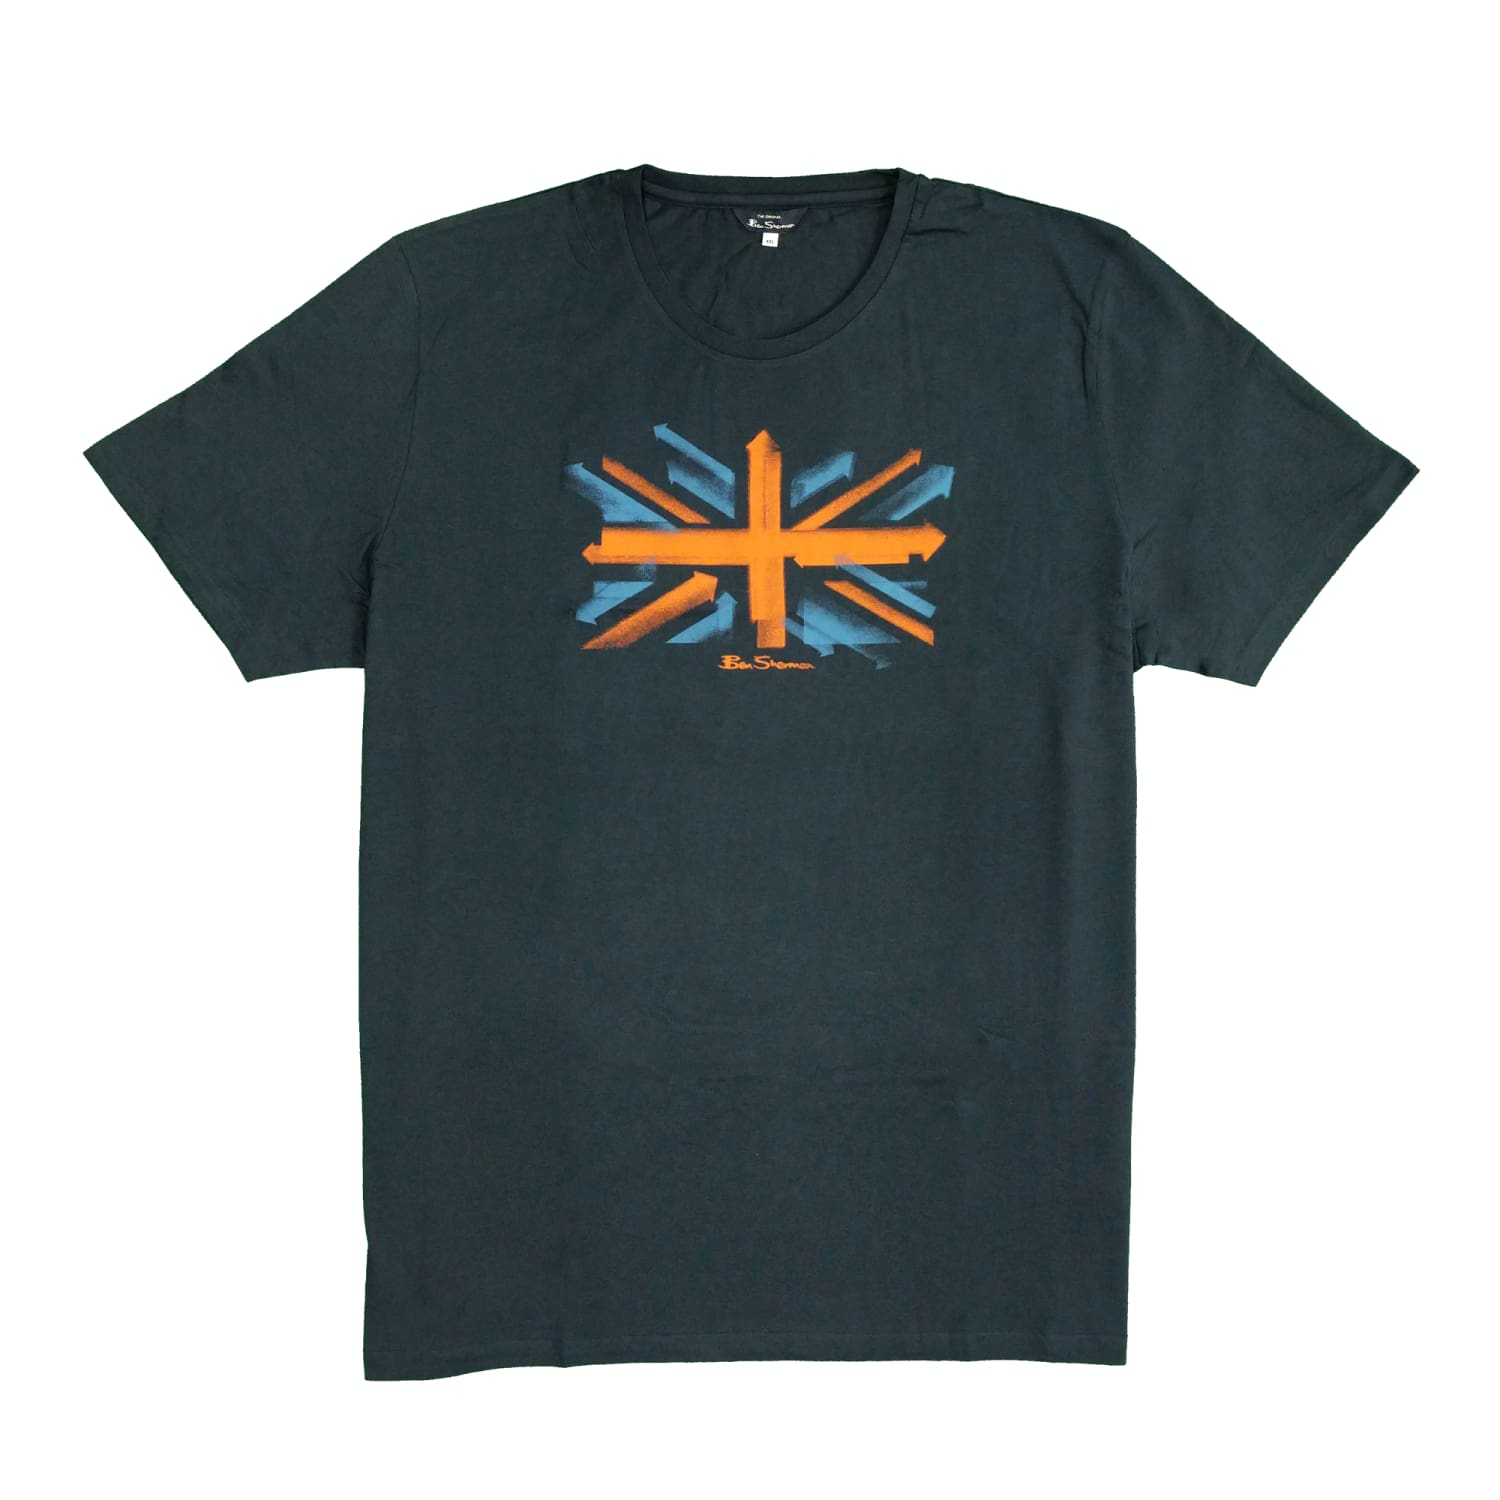 Ben Sherman T-Shirt - 0057872LI - Dark Navy 1